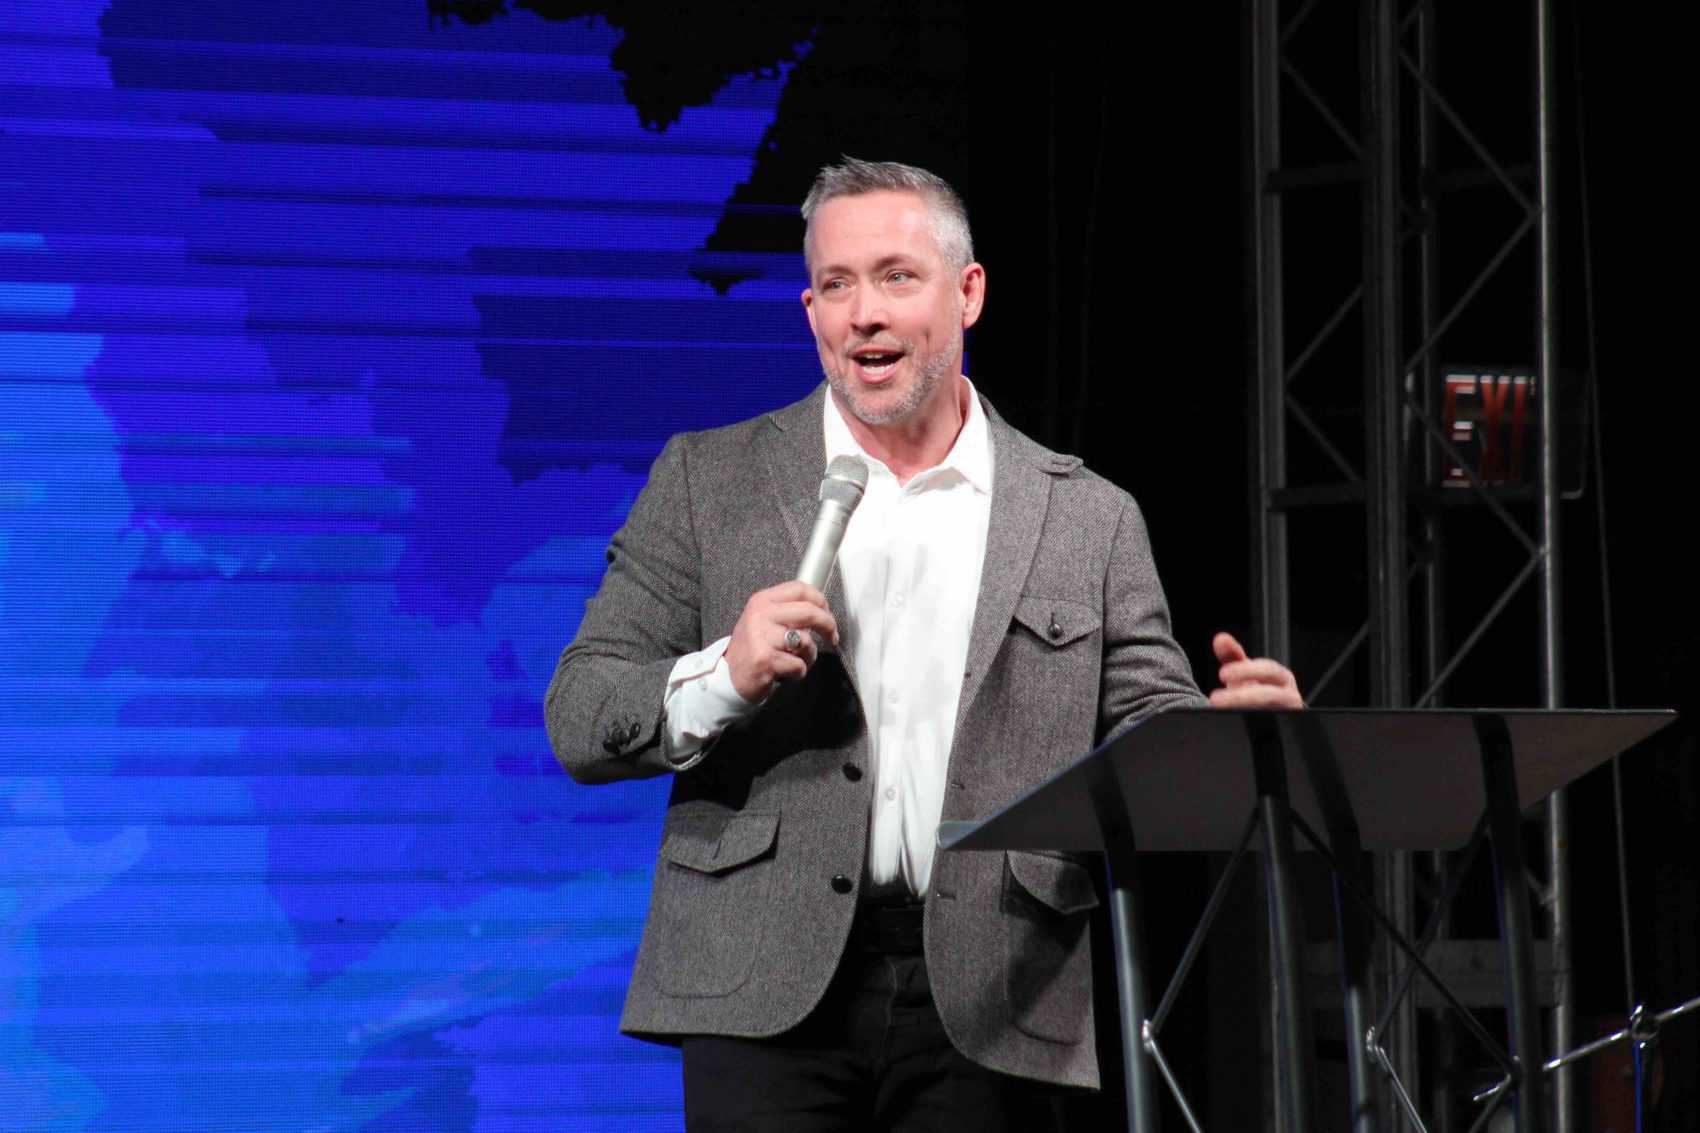 Amid political discord, Greear urges Midwest leaders to ...